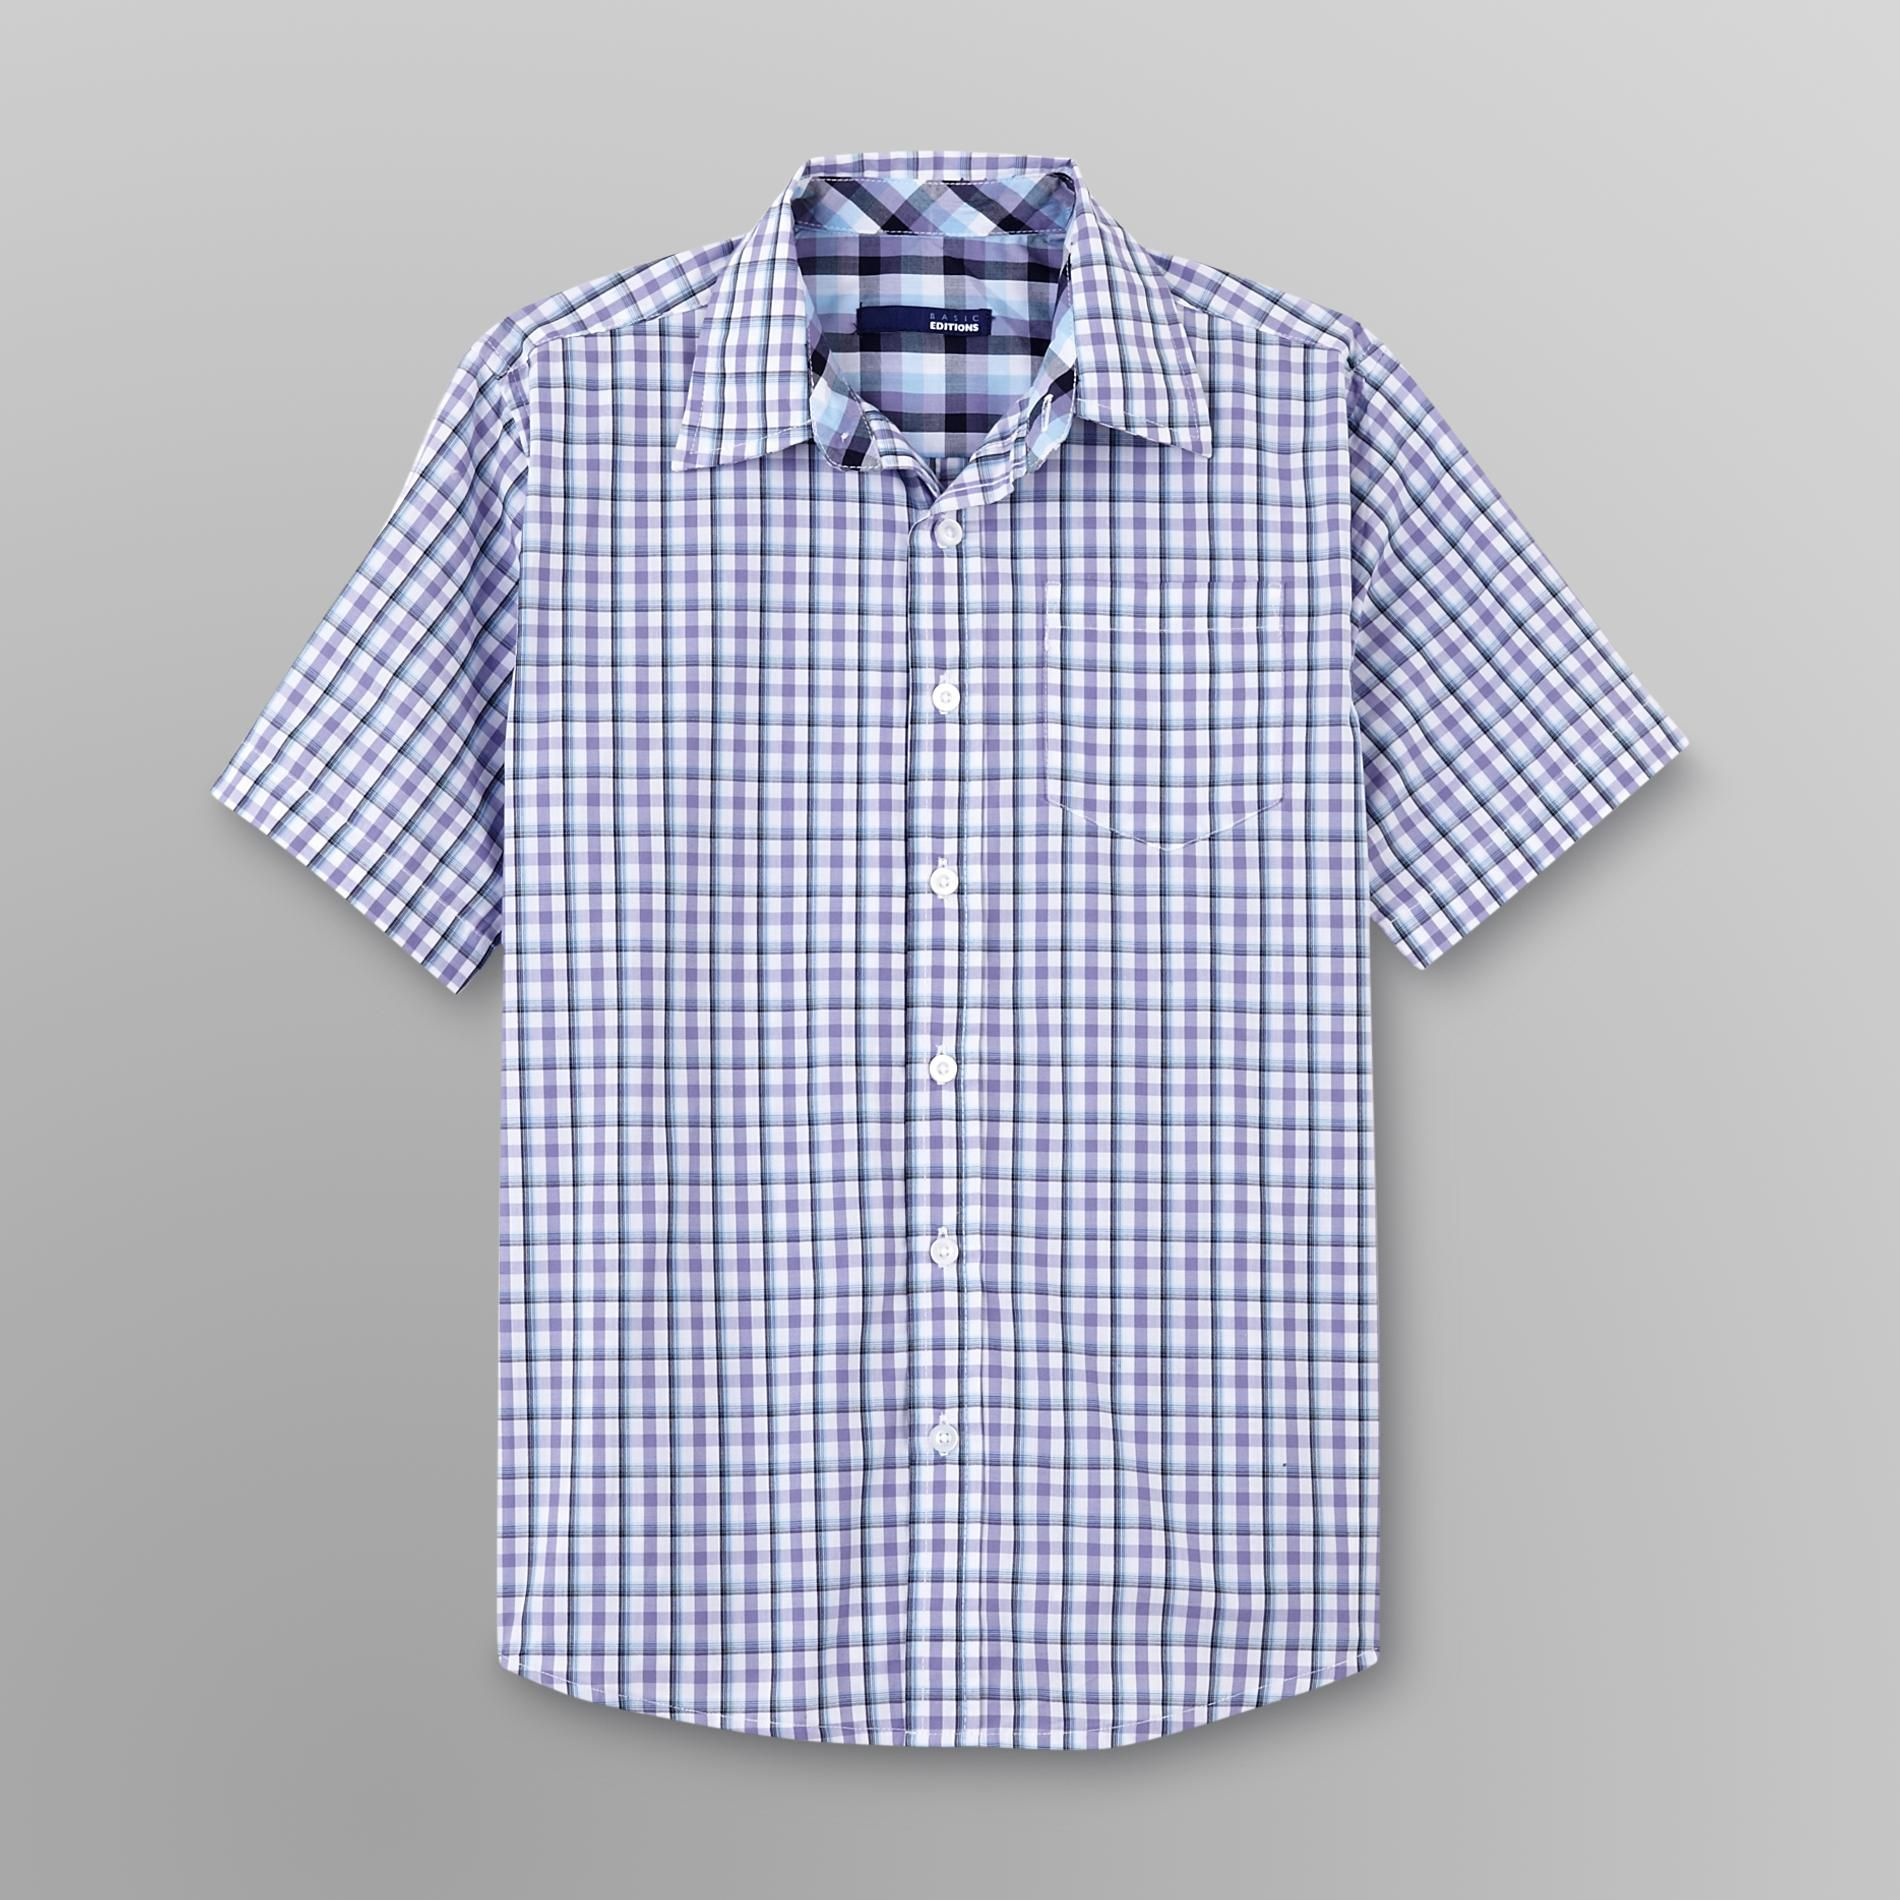 Boy's Sport Shirt - Plaid